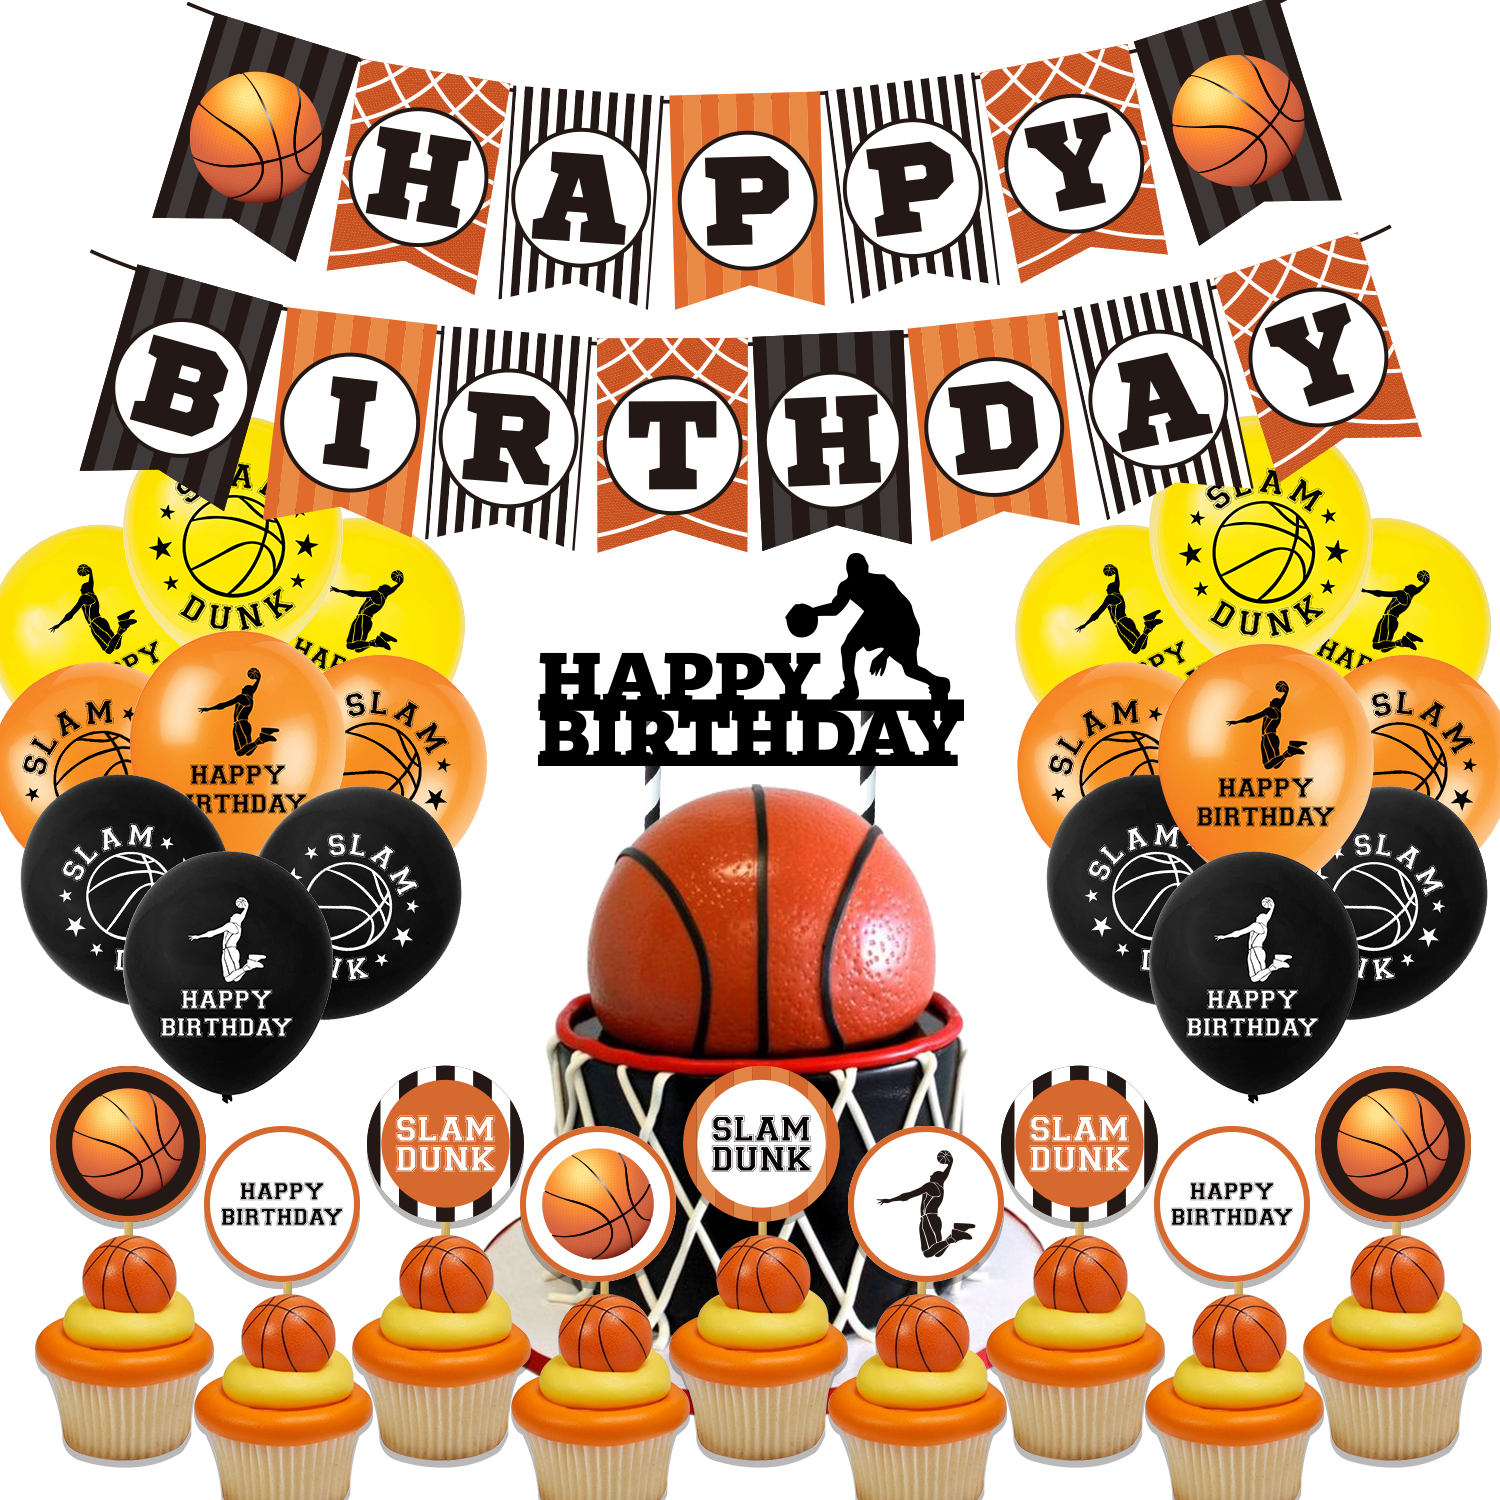 Basketball Theme Birthday Party Supplies Balloons Banner Cake Topper Cool Sports Boys Birthday Party Decor For Basketball Fans